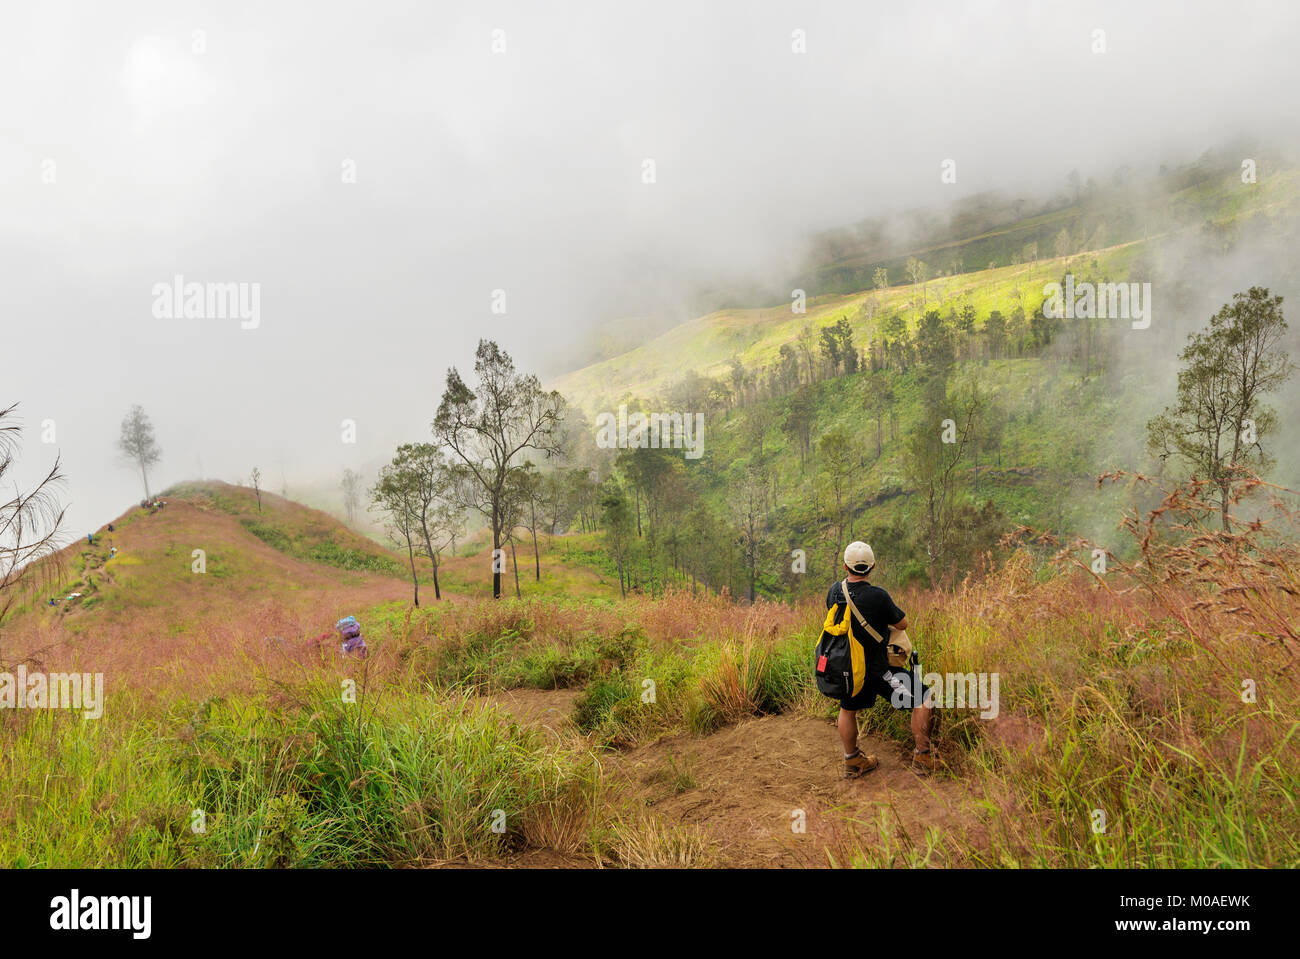 Enjoying the beautiful view of Mount Rinjani, Lombok, Indonesia - Stock Image